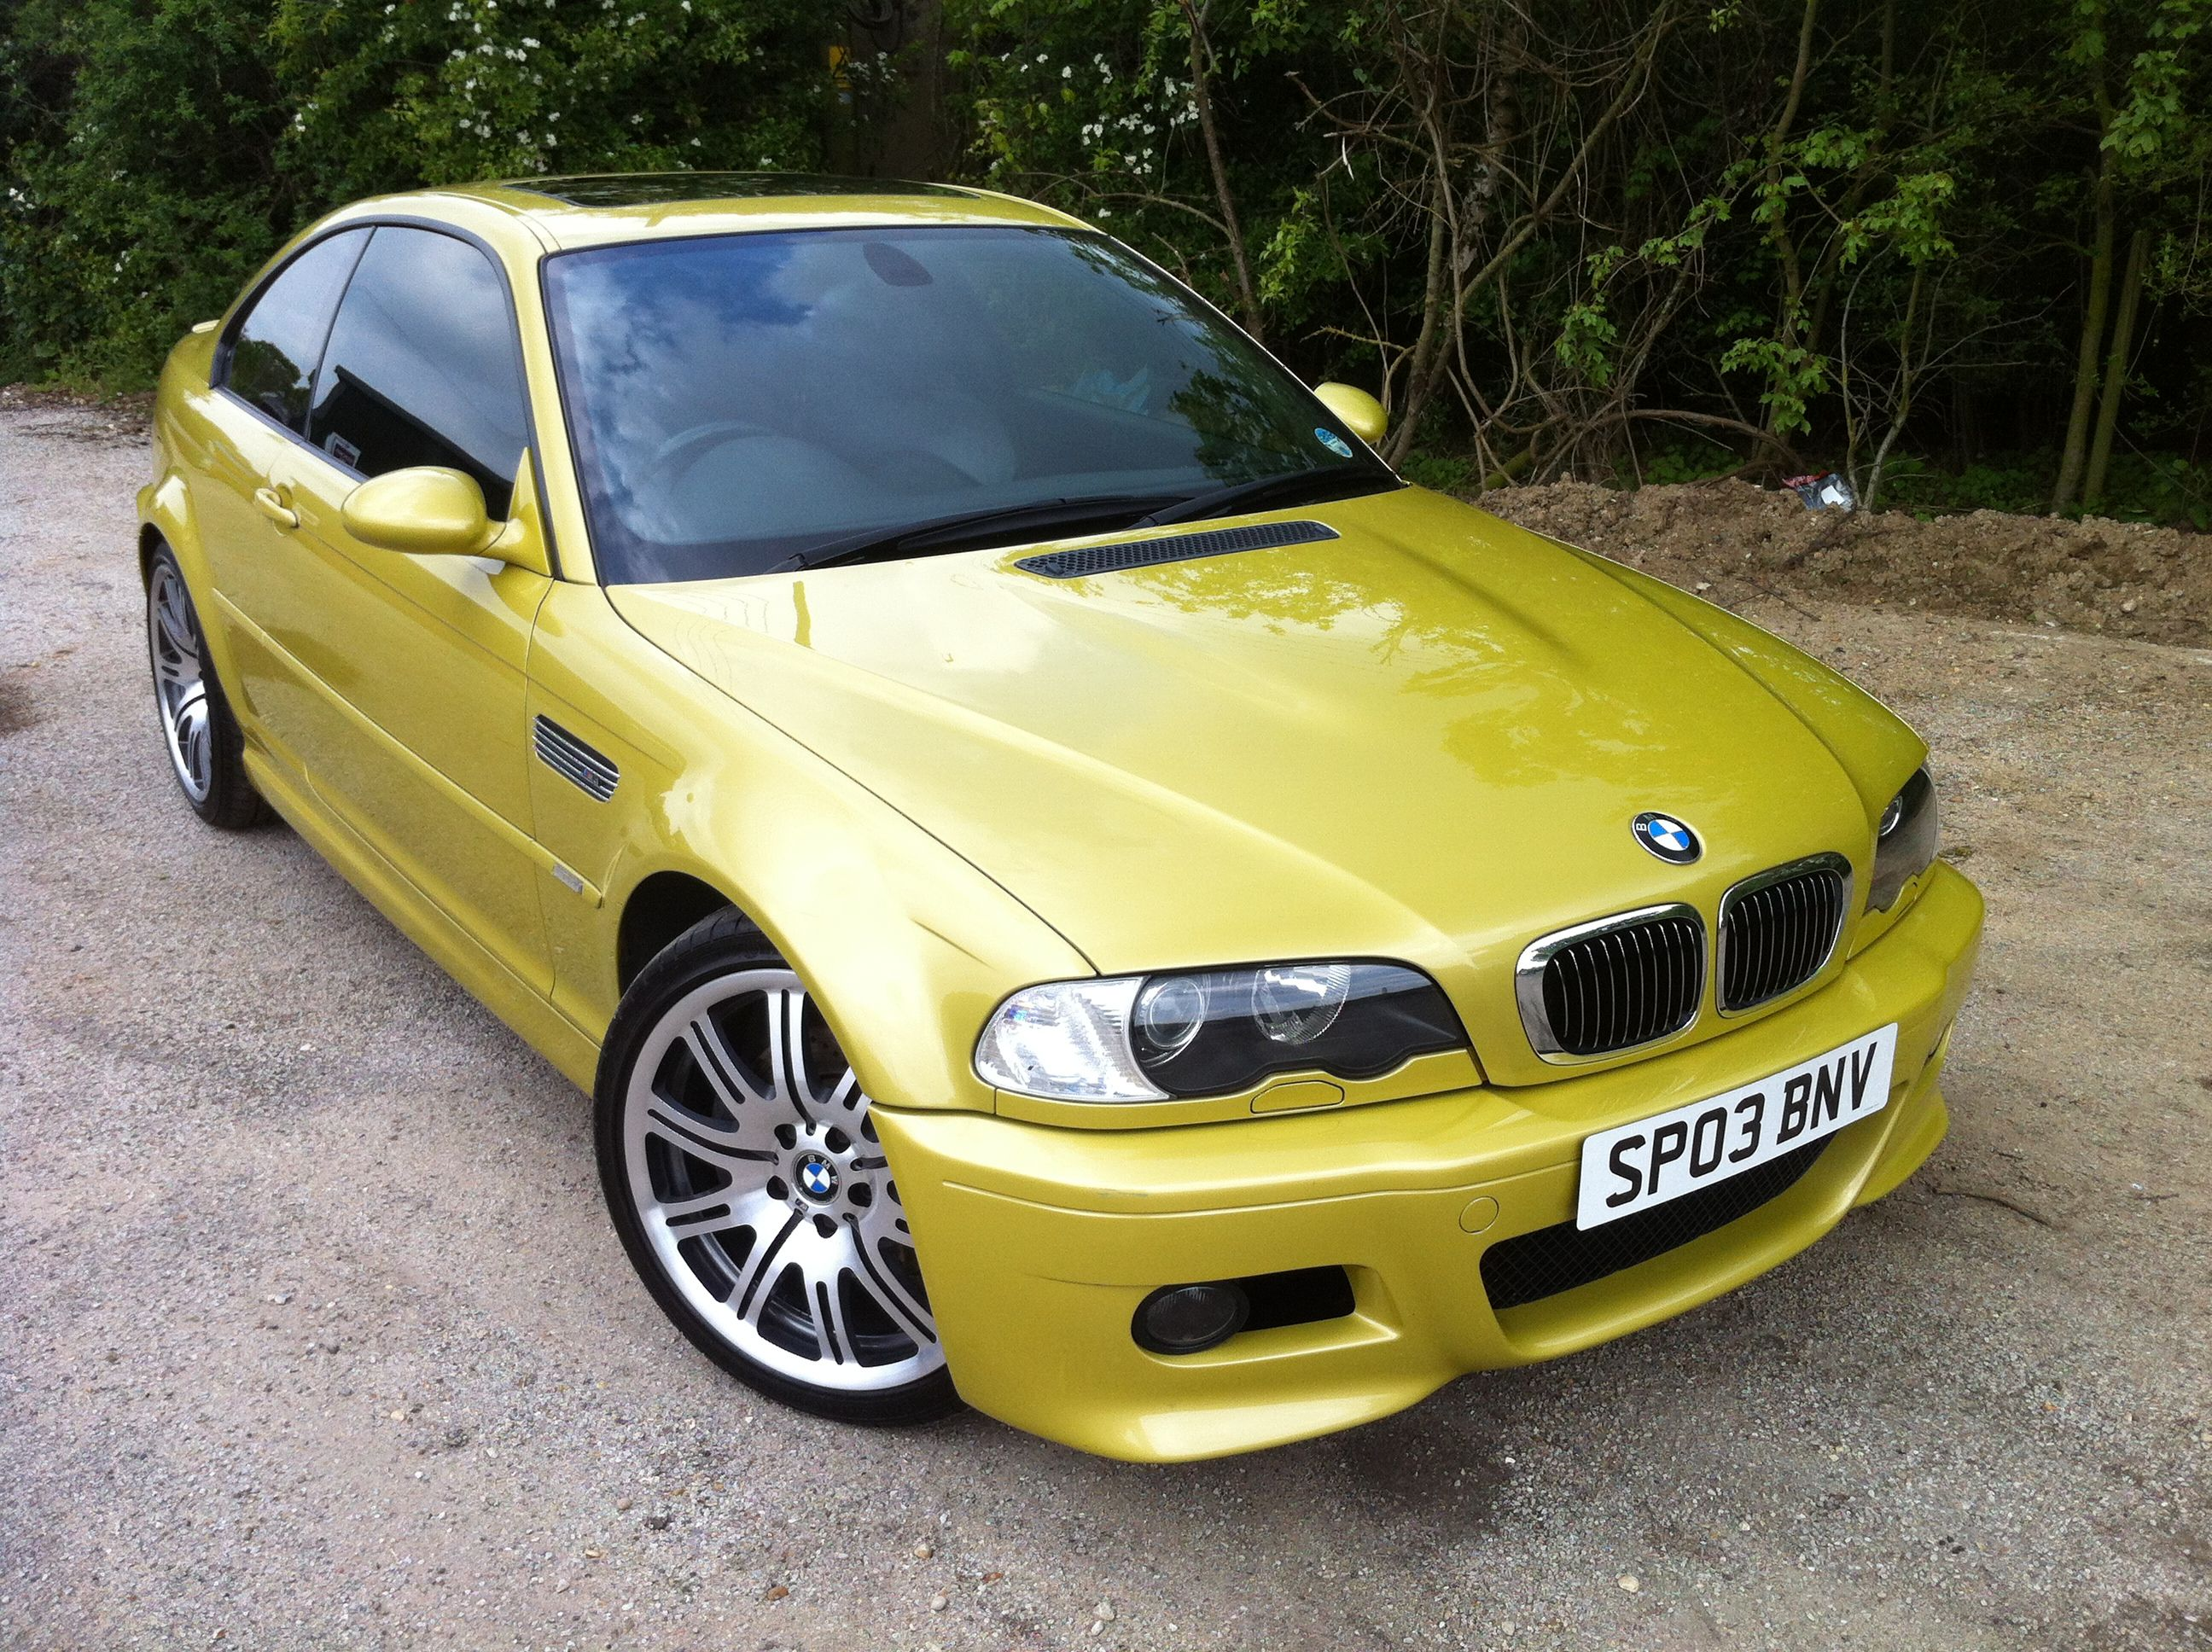 Bmw M3 Smg2 In Phoenix Yellow Bmw Pinterest Bmw Bmw E46 And